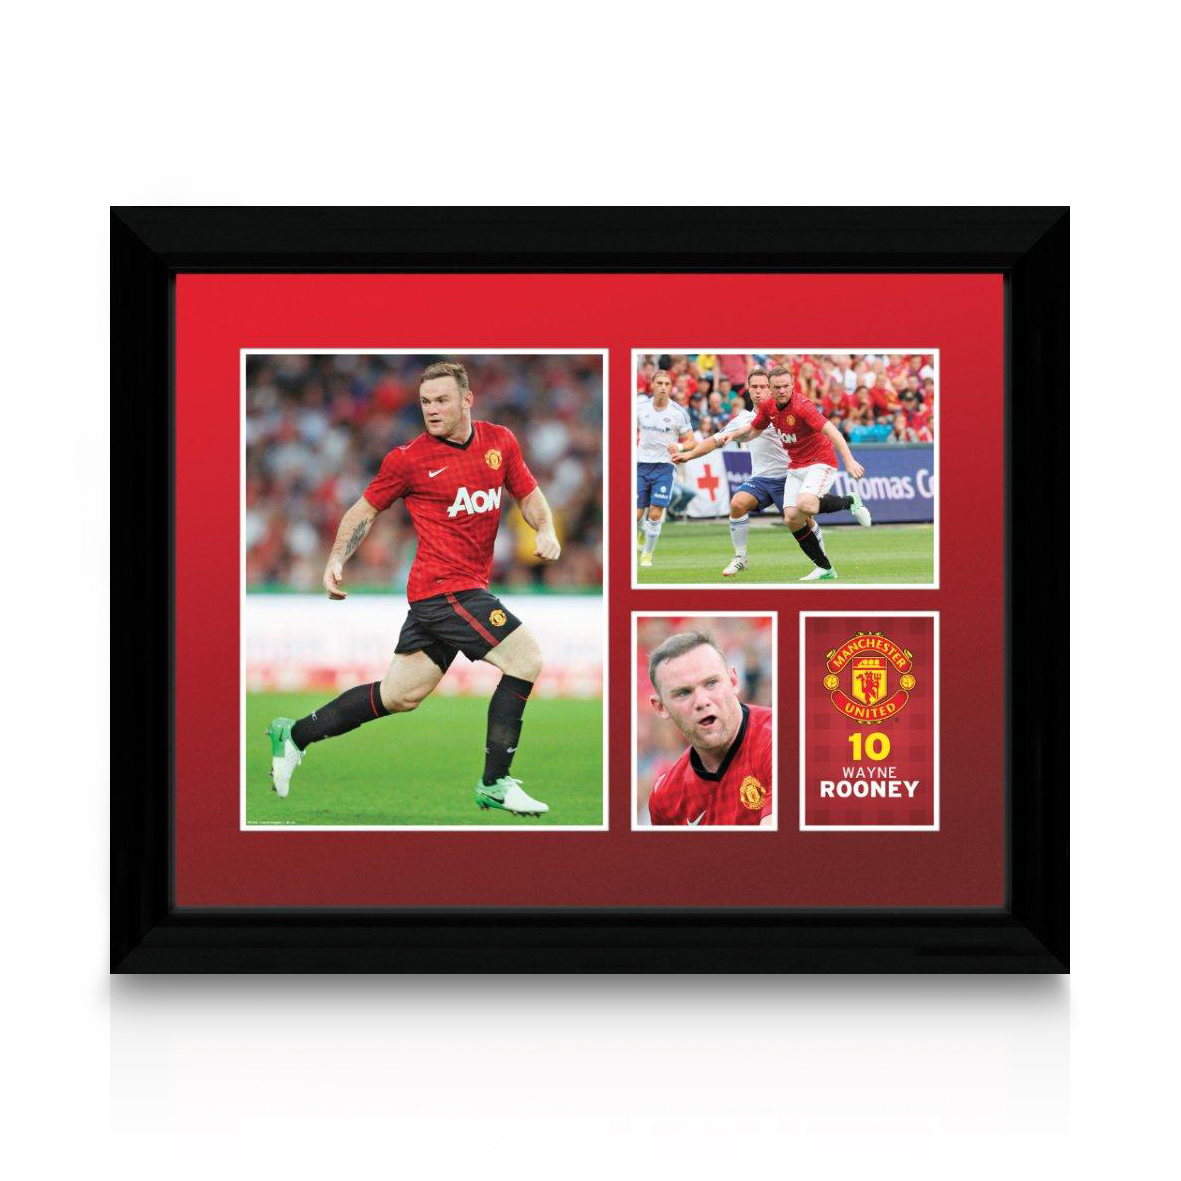 Manchester United 2012/13 Rooney Framed Print - 12 x 16 Inch